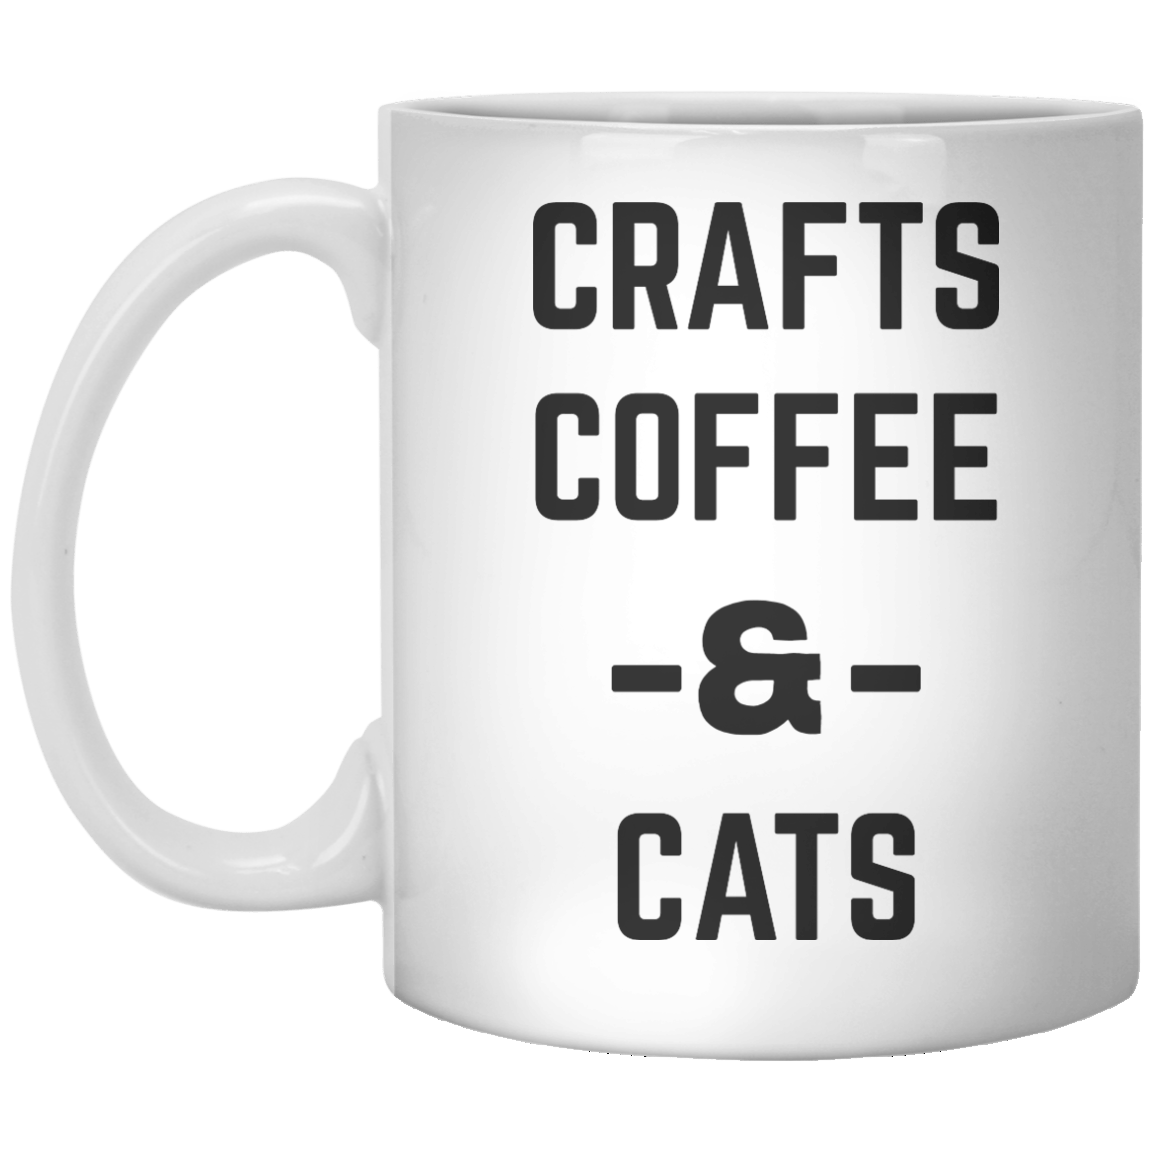 Crafts Coffee & Cats MUG - Shirtoopia